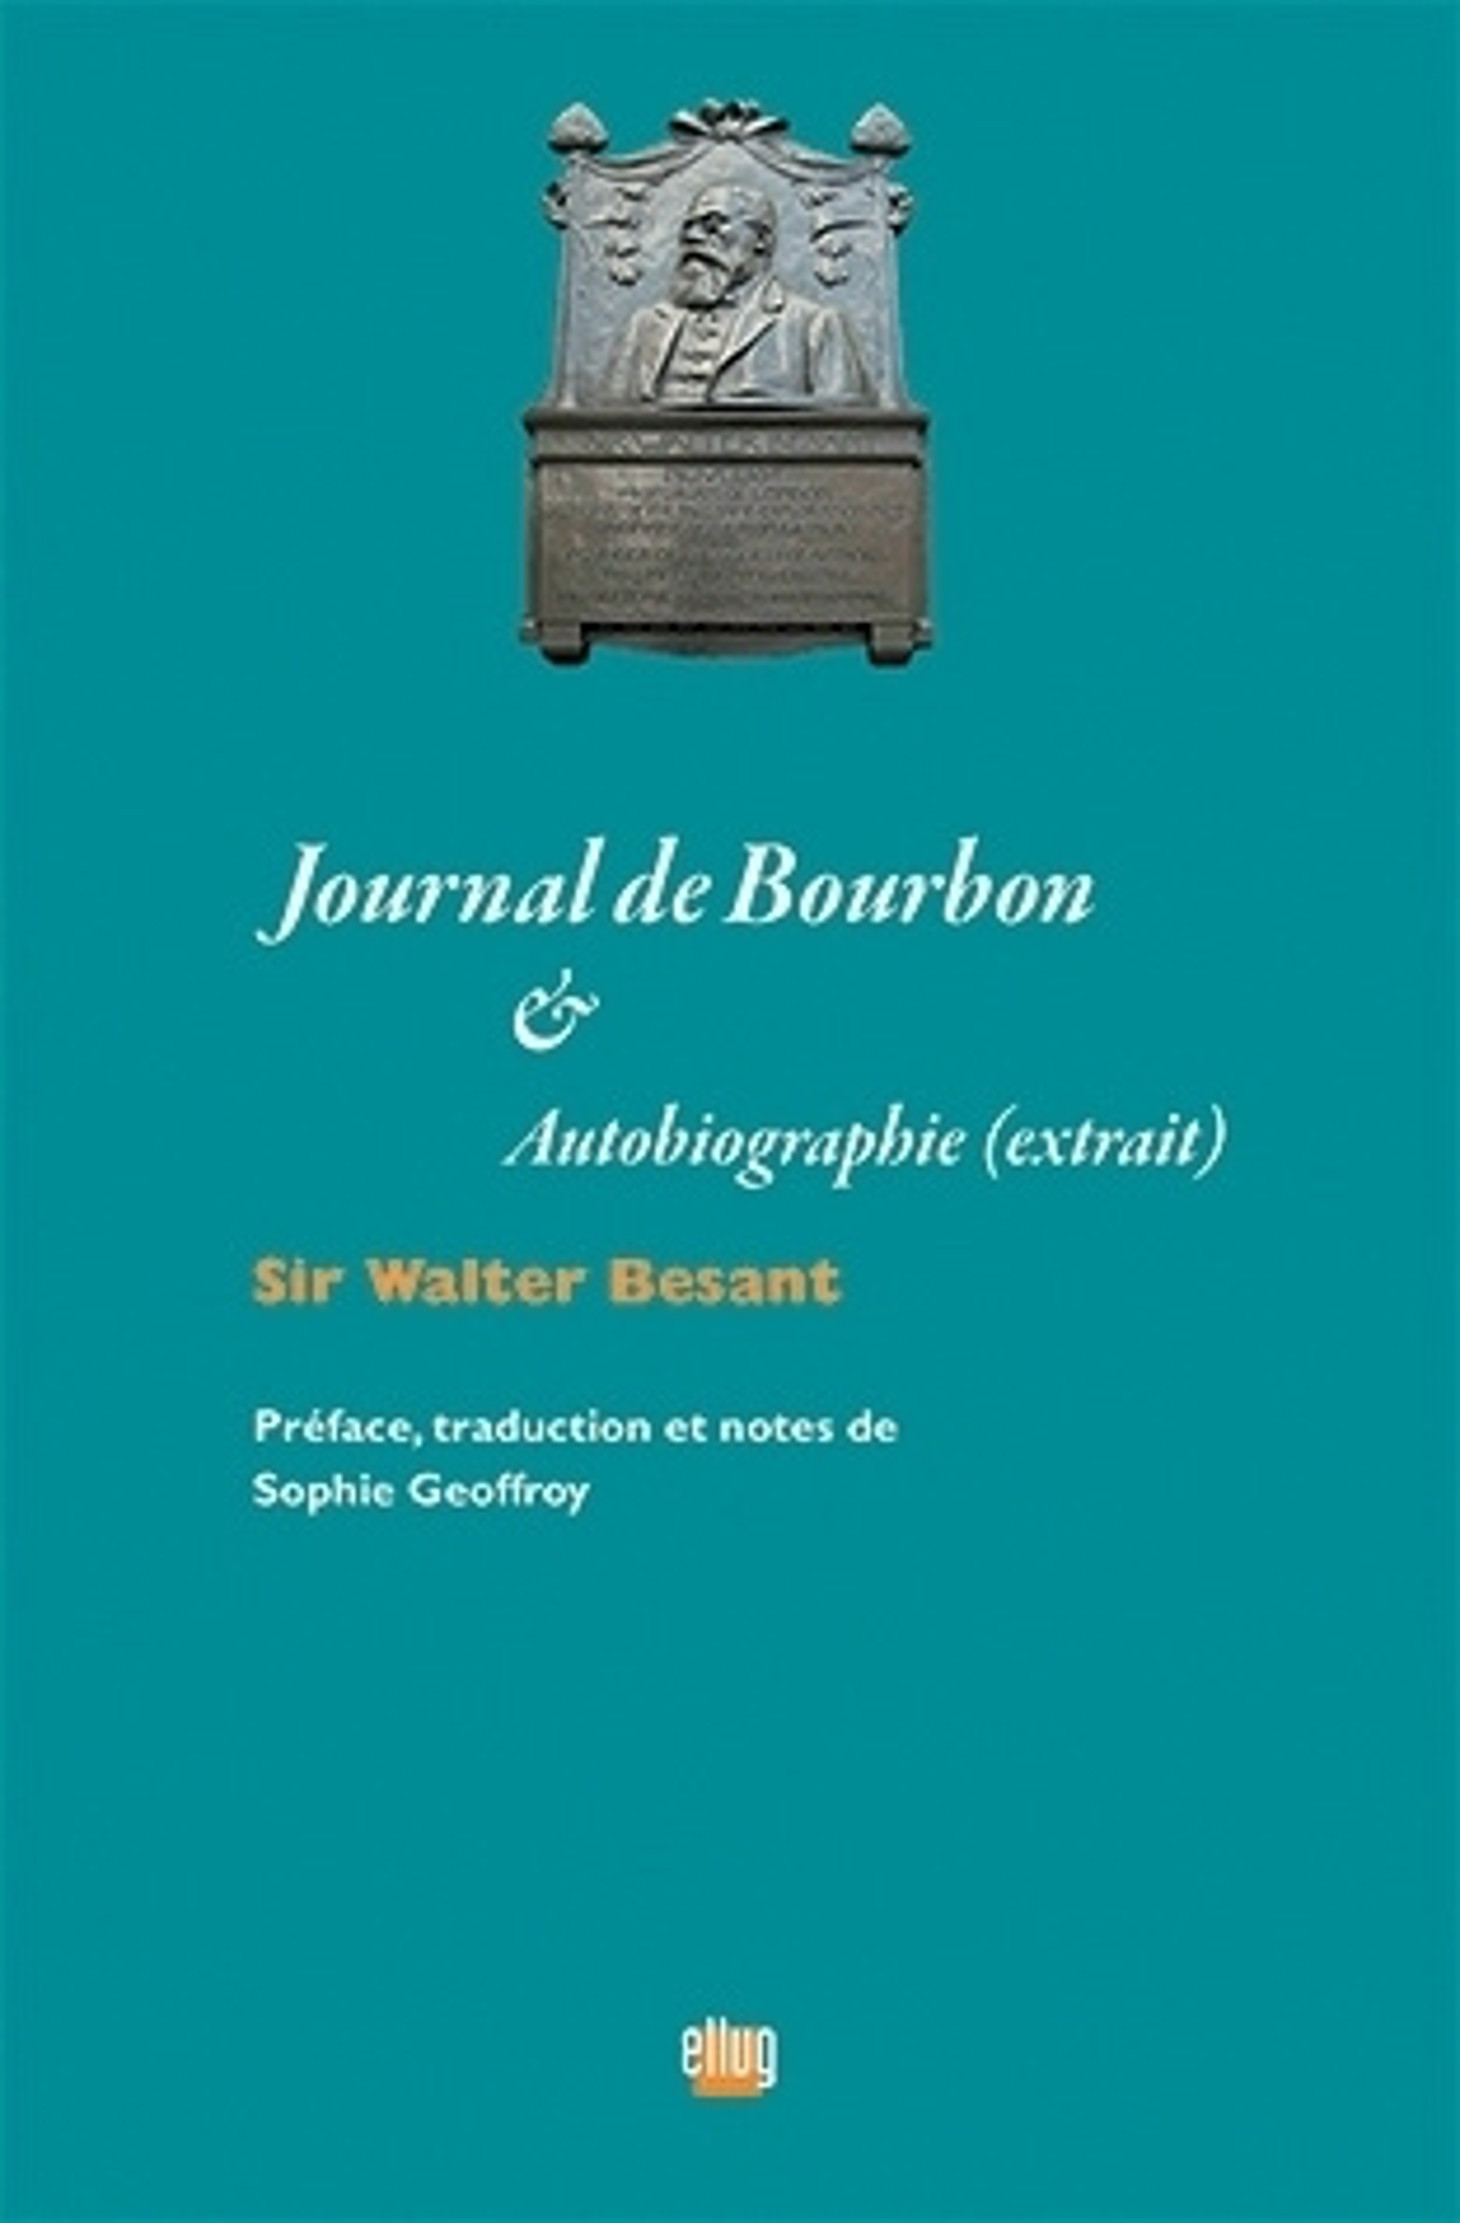 Couverture Journal de Bourbon de Sir Walter Besant